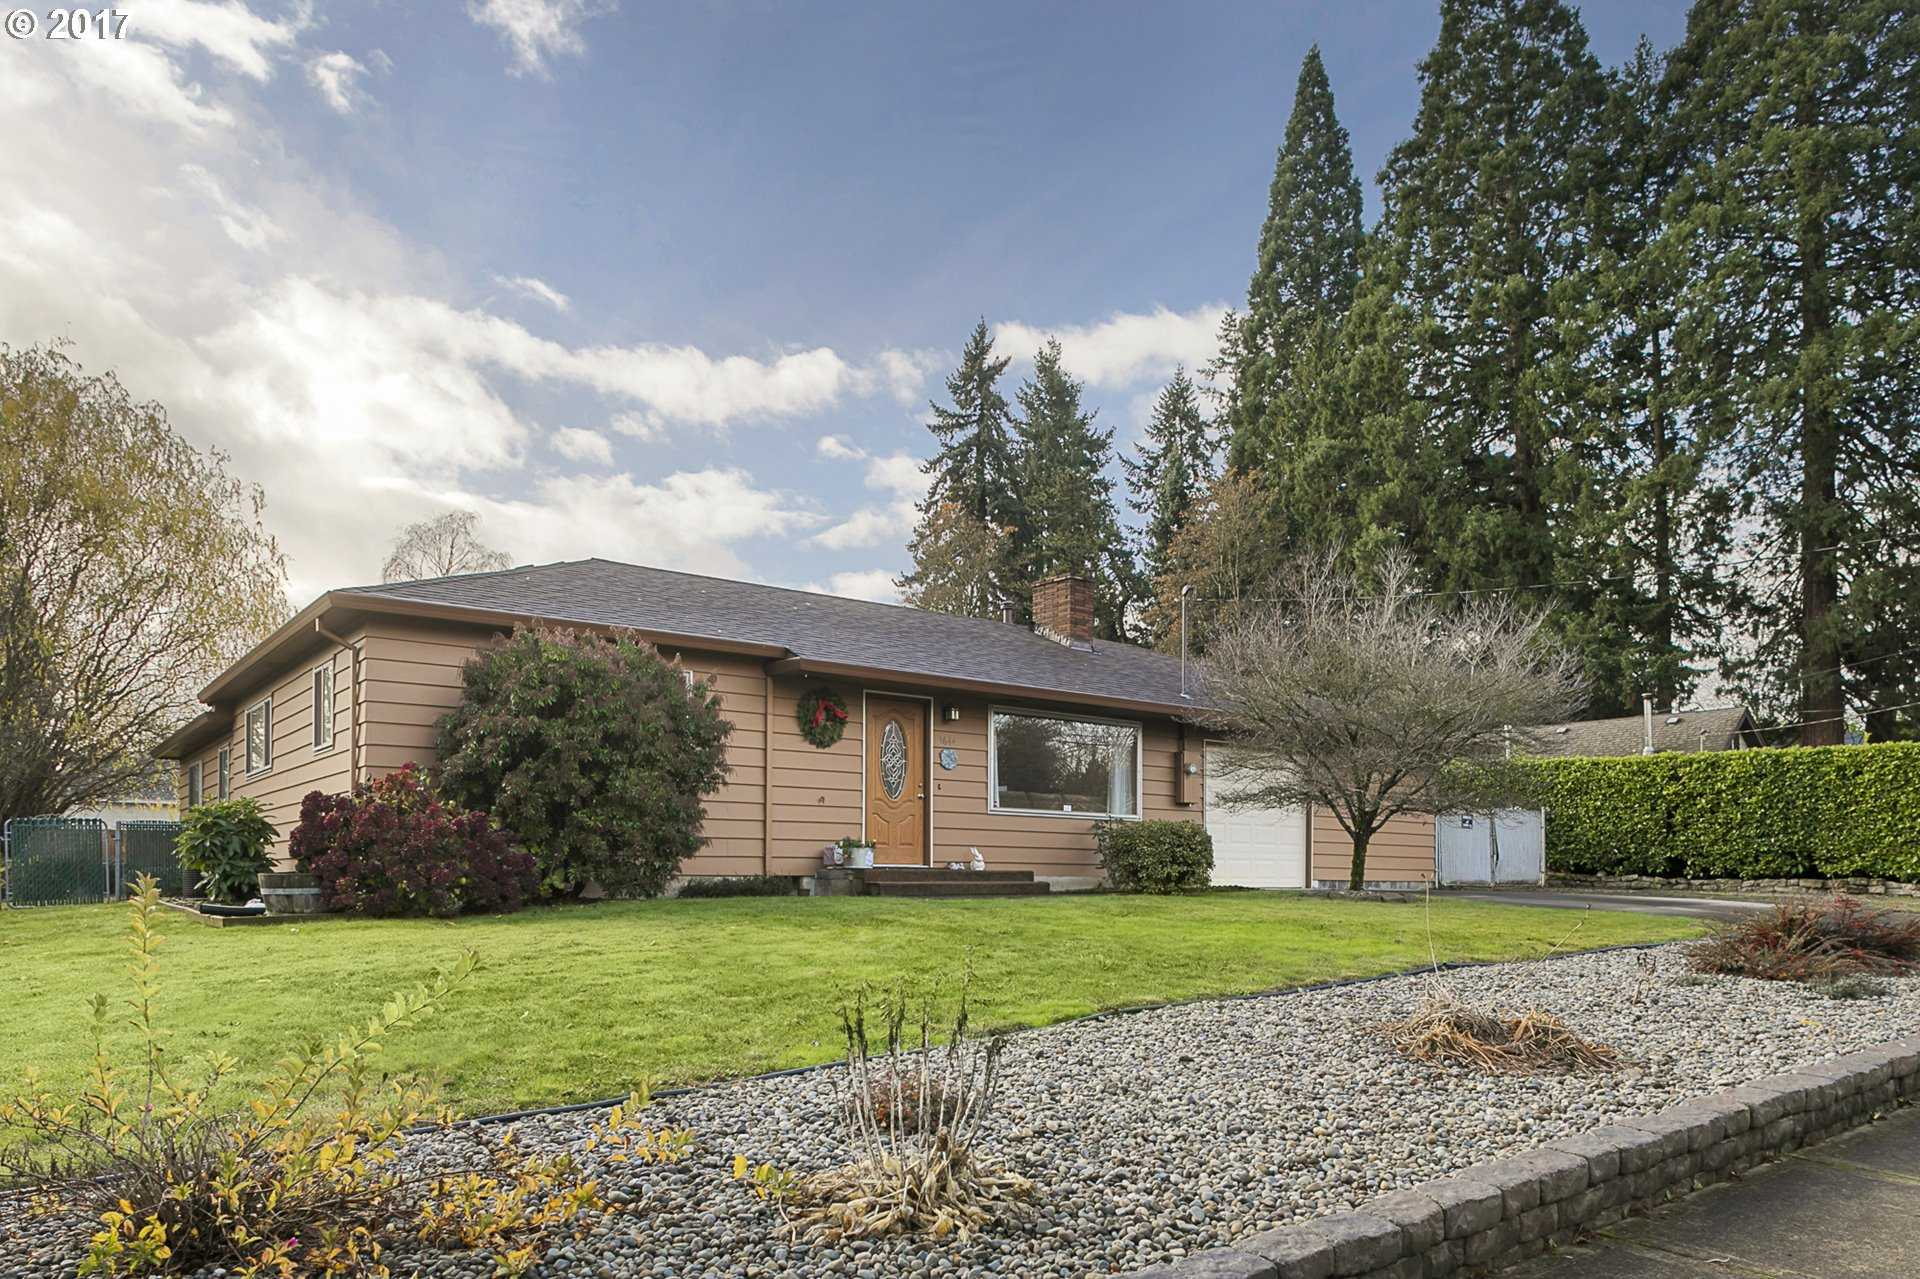 $405,000 - 3Br/2Ba -  for Sale in Ardenwald, Milwaukie